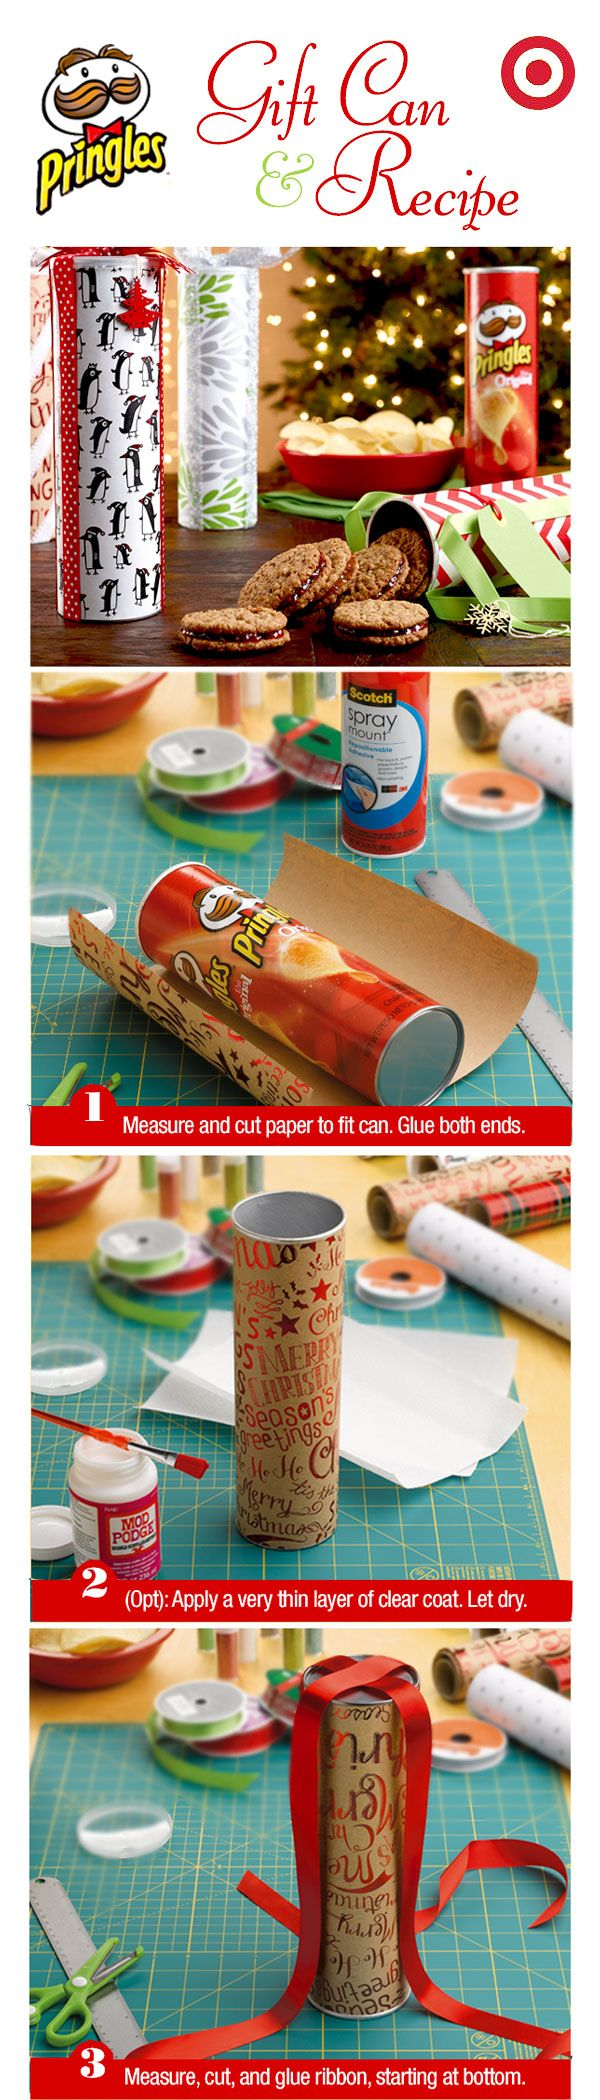 Need a last minute DIY wrapping solve? Get in the holiday can do spirit with this Pringles can-to-cookie container. Get our Pringles Cookie recipe: http://www.target.com/r/recipes/kringle-spiced-pringles-cookies-recipe?ref=tgt_soc_0000022611&AFID=PIN&CPNG=Ess_Holiday+2014